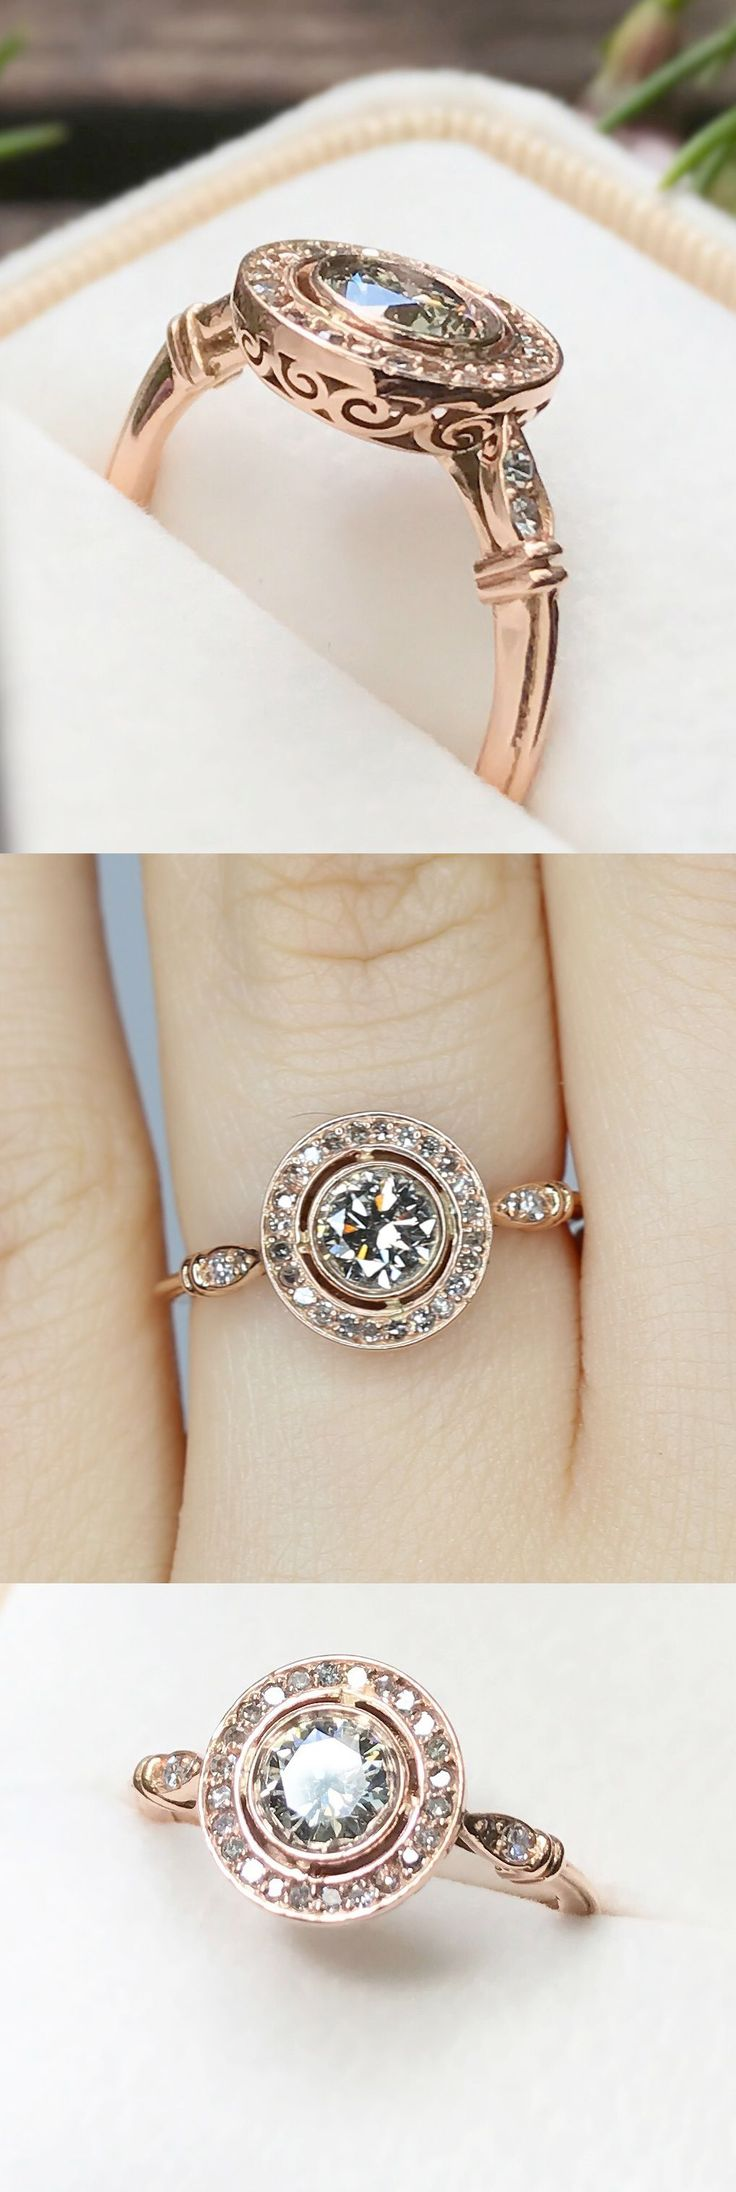 14k Yellow or White Gold Engagement rings for women